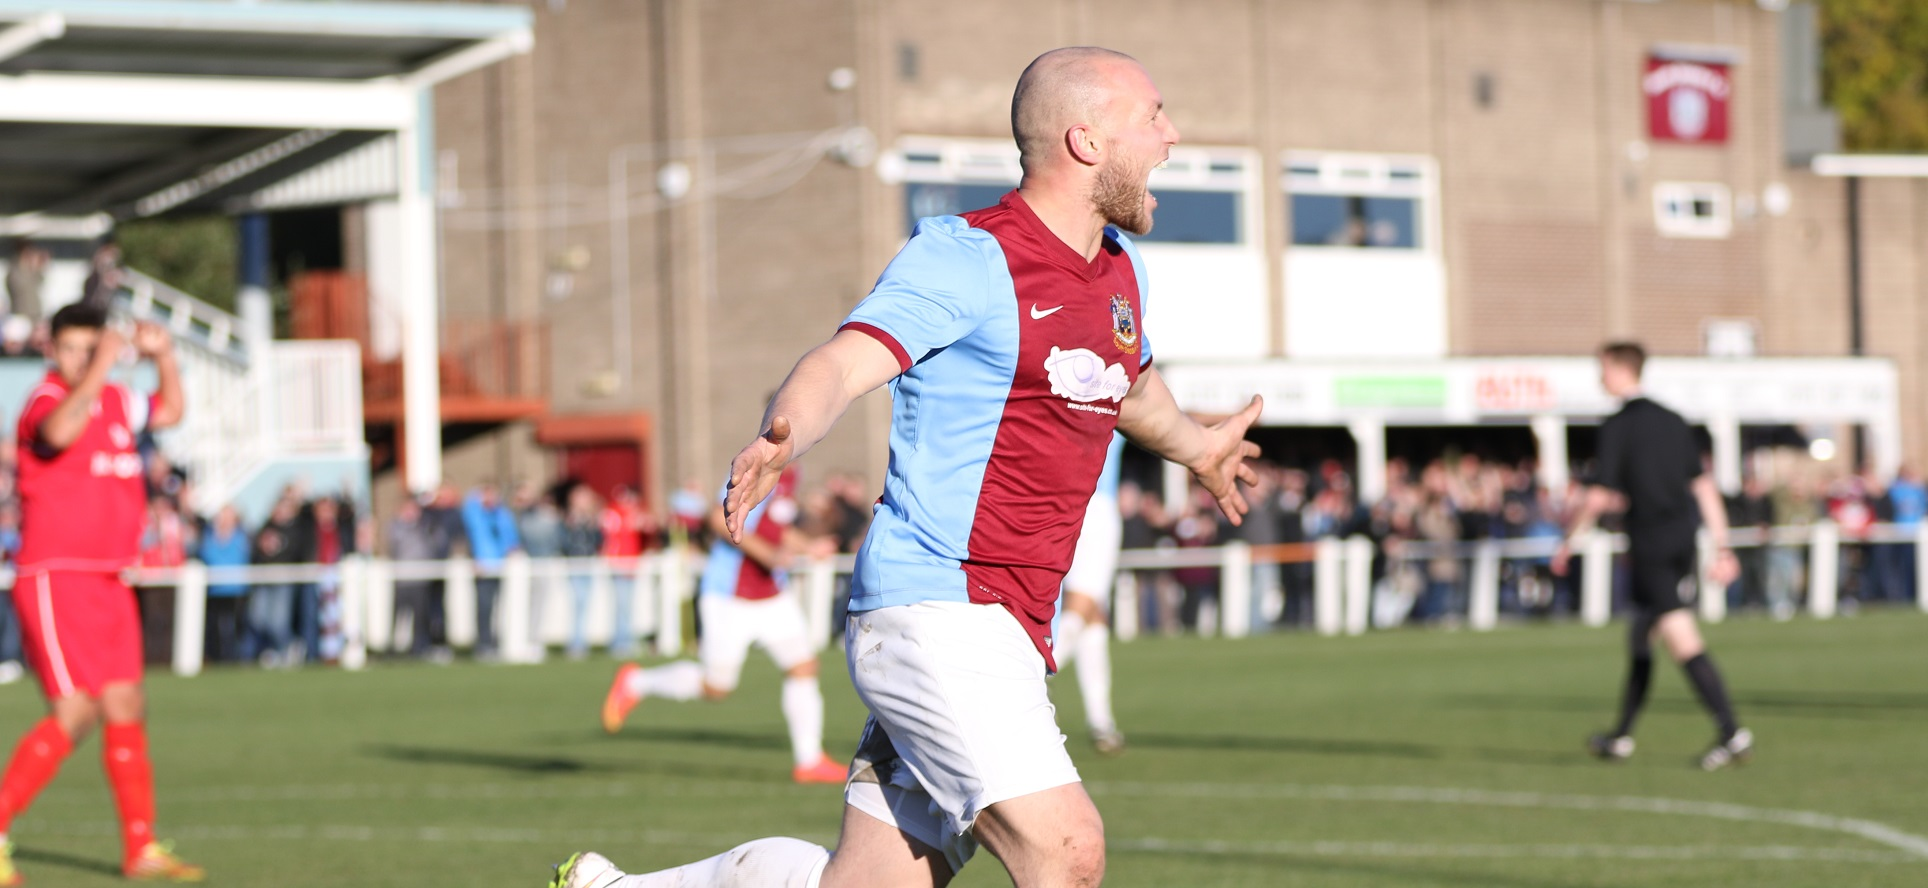 In Pictures: South Shields 4-3 Thornaby